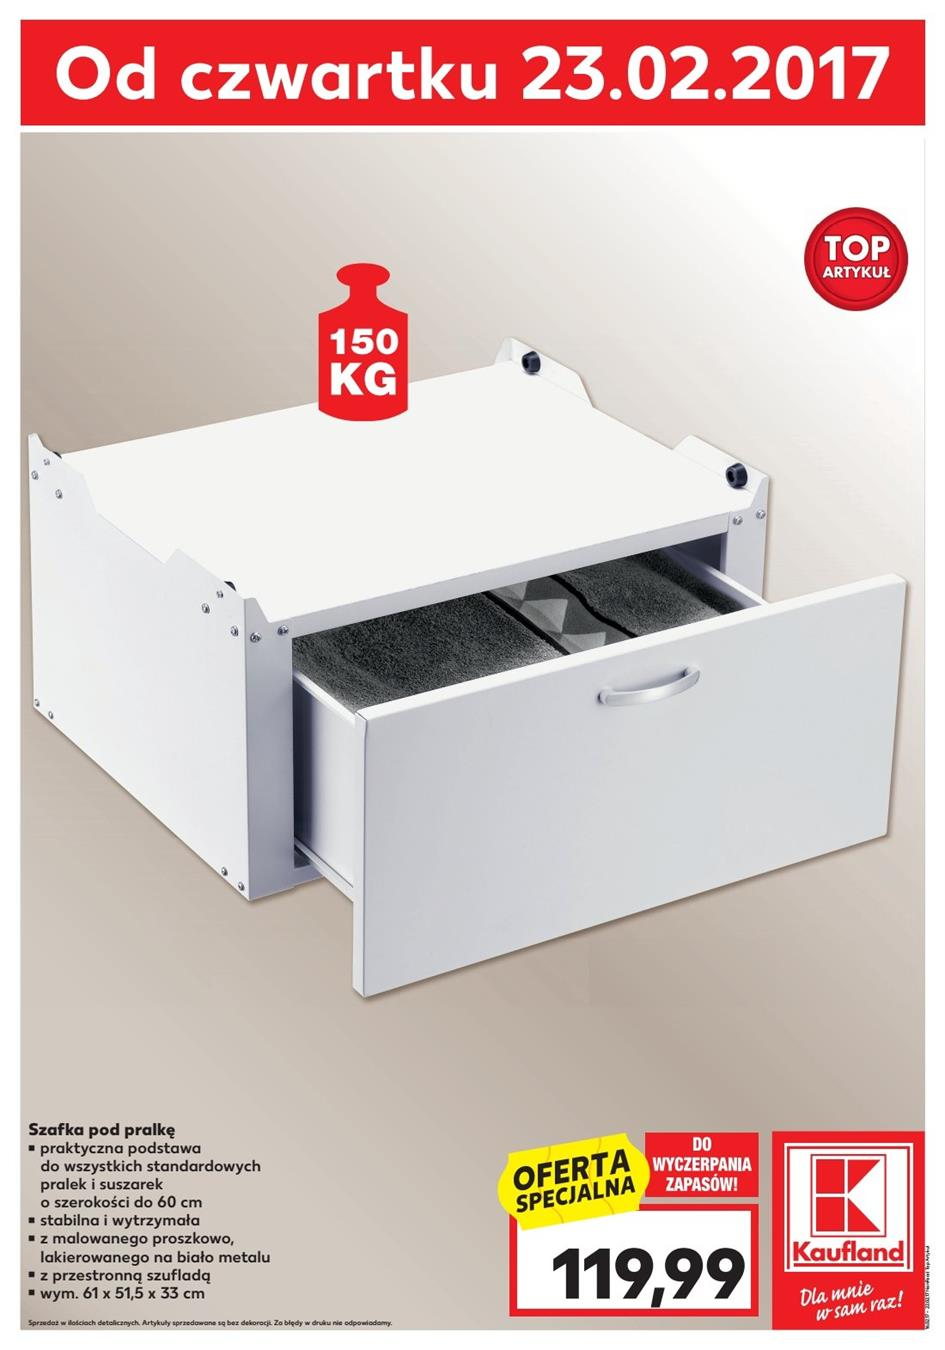 Gazetka Kaufland Polska Markety Sp. z o.o nr 0 od 2017-02-23 do 2017-03-01